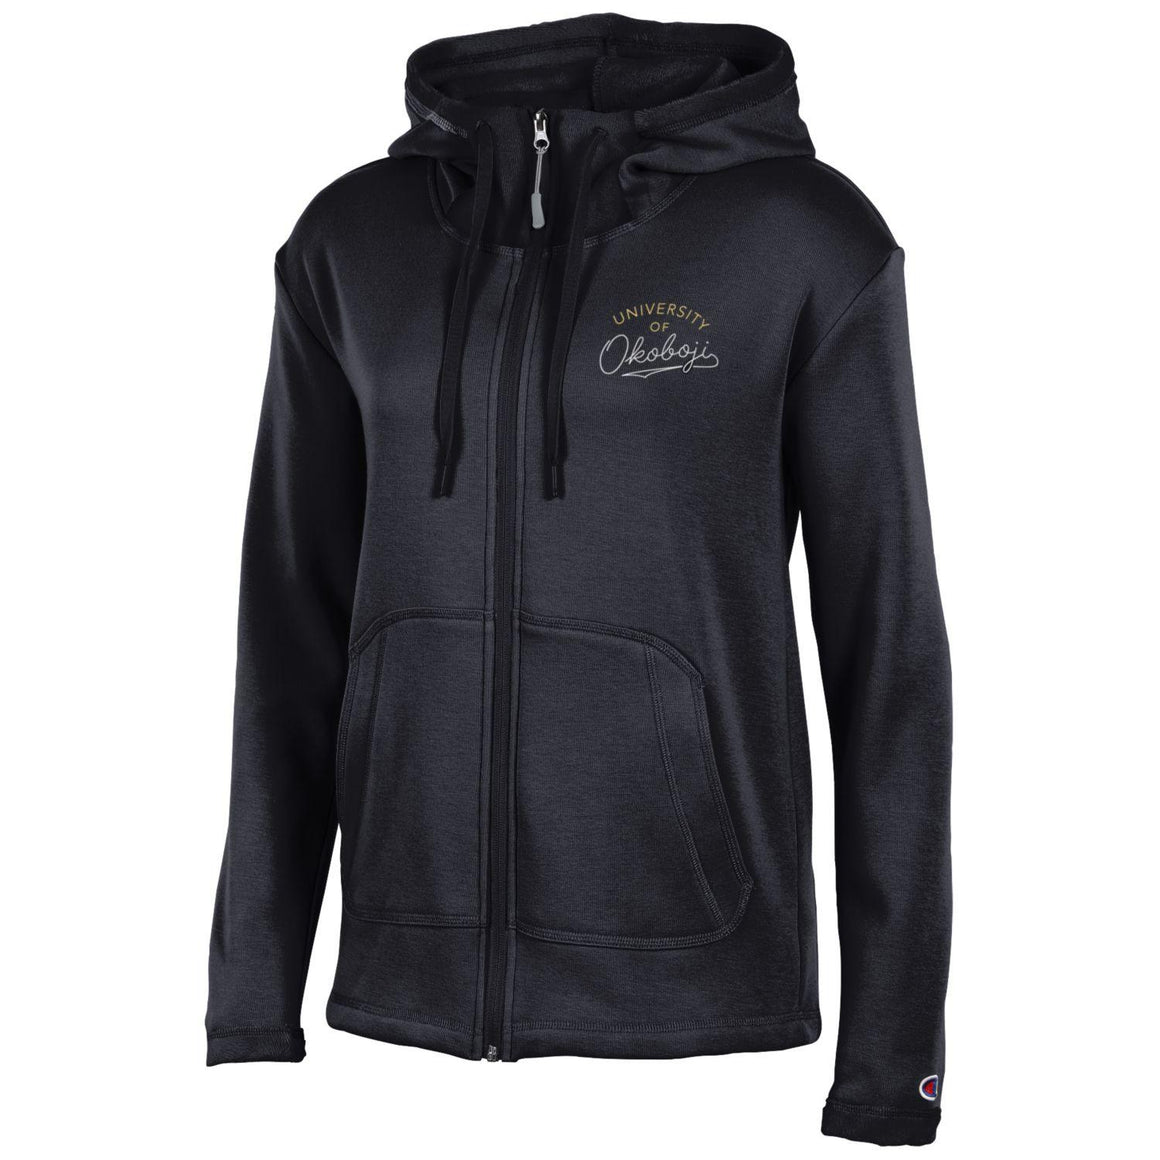 Ladies Full Zip Black Embroidered (Very Soft Inside)